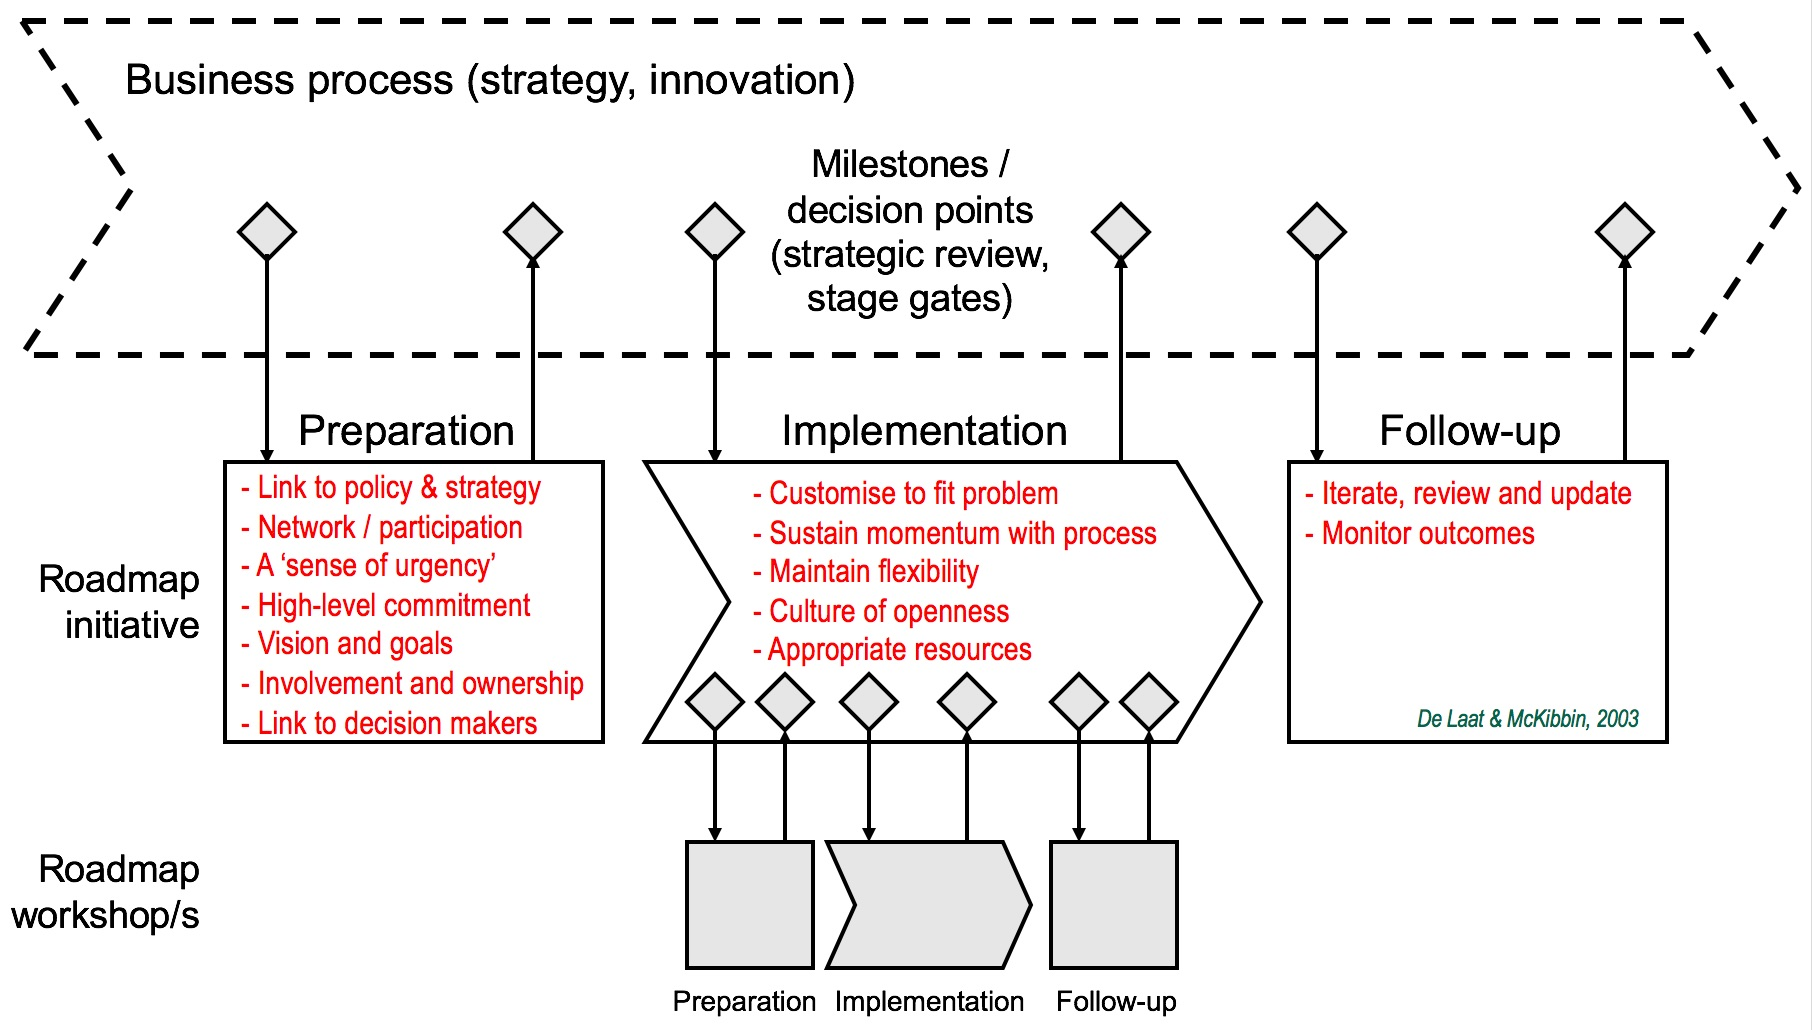 Roadmapping is a subservient management process that uses  roadmap architectures  as the primary lens, supporting strategy, innovation and other business processes